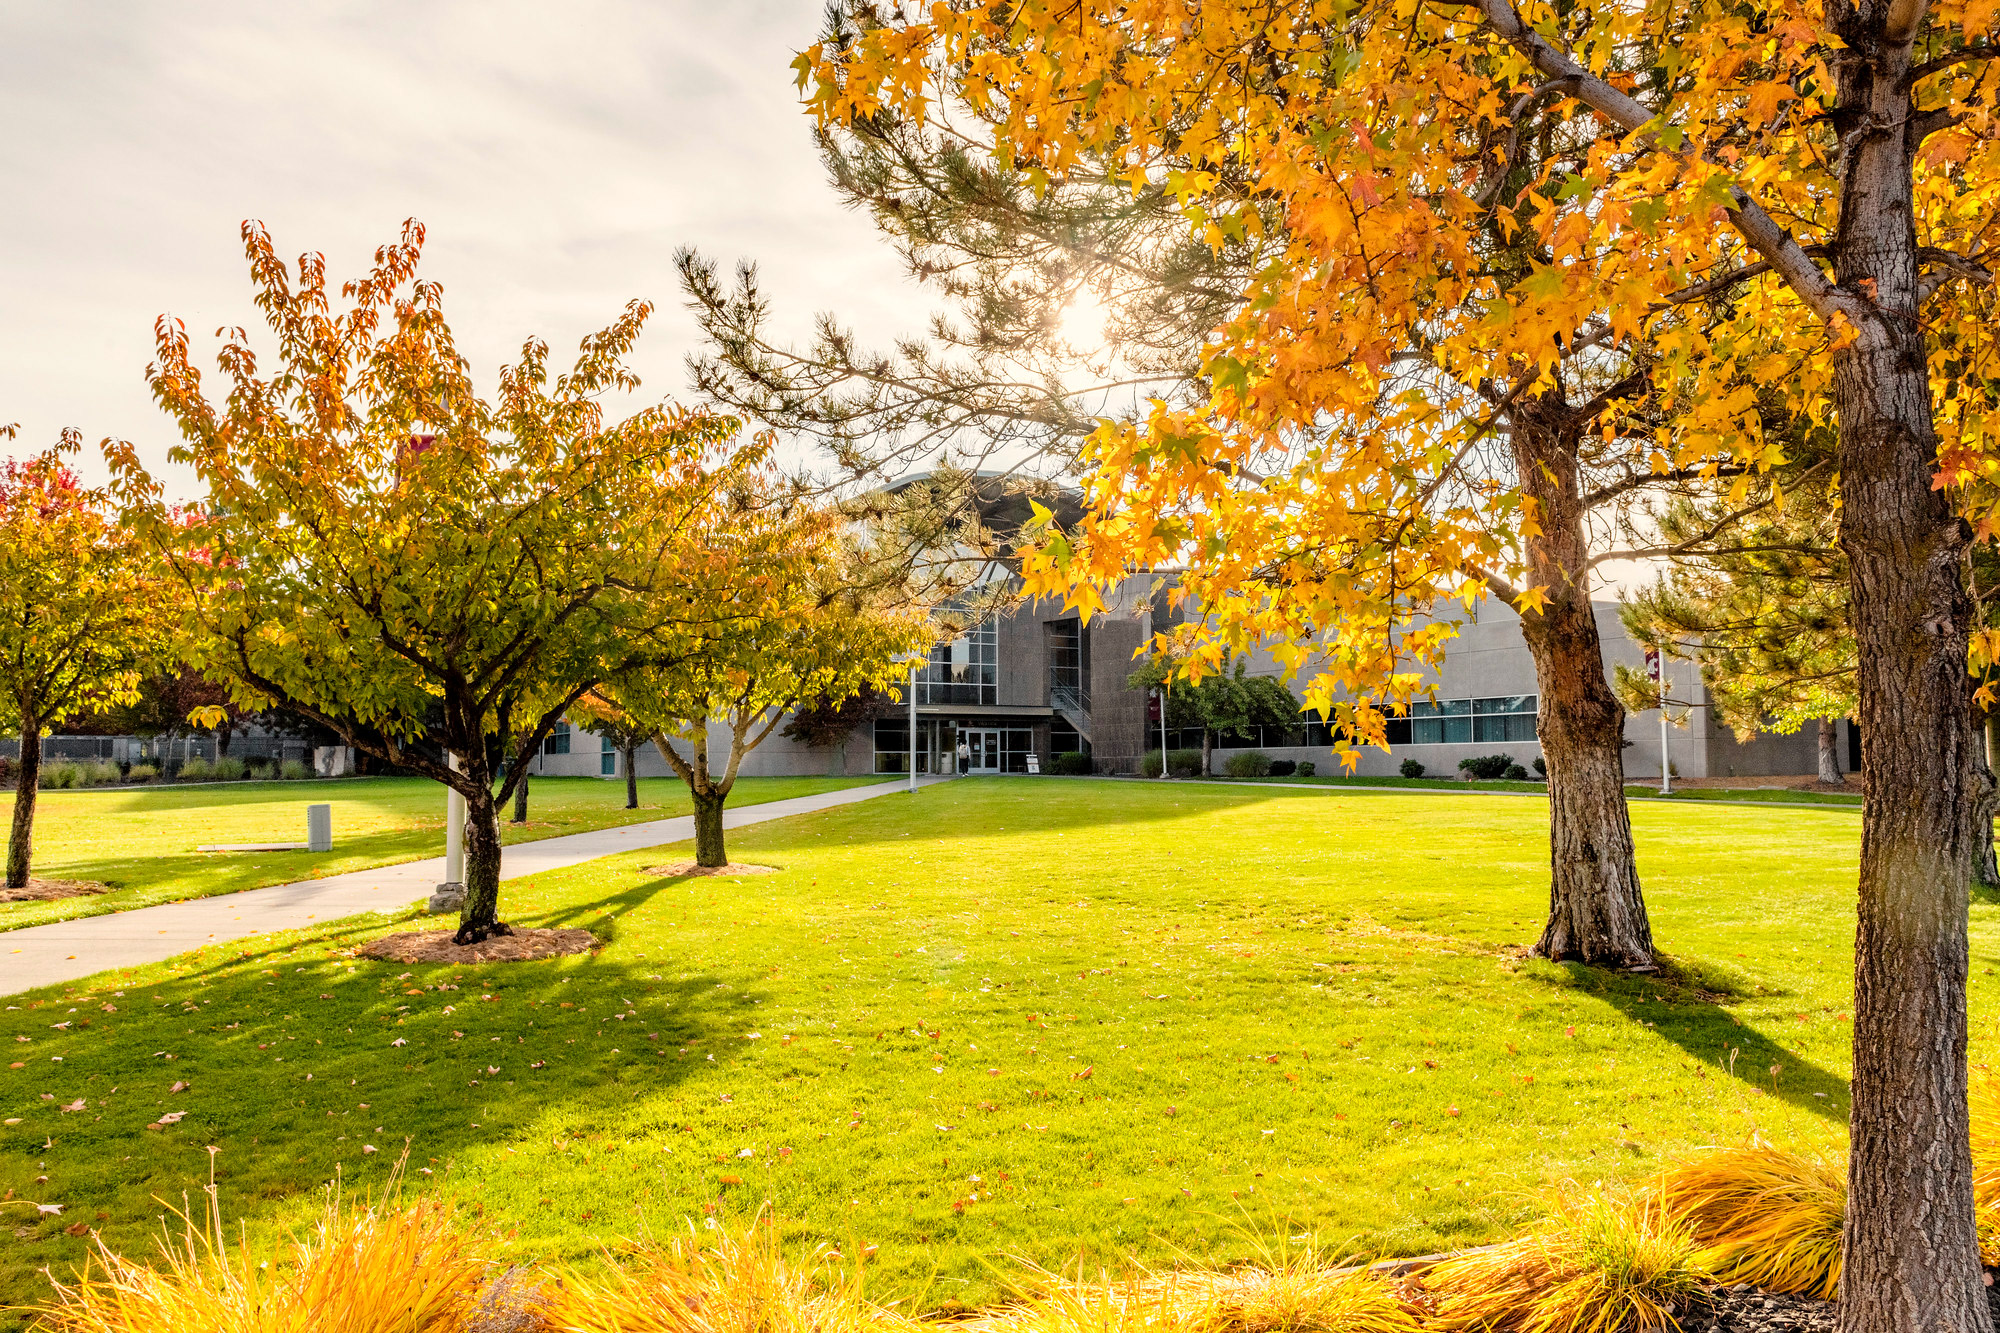 A view of the lawn, trees, and buildings on the WSU Tri-Cities campus.